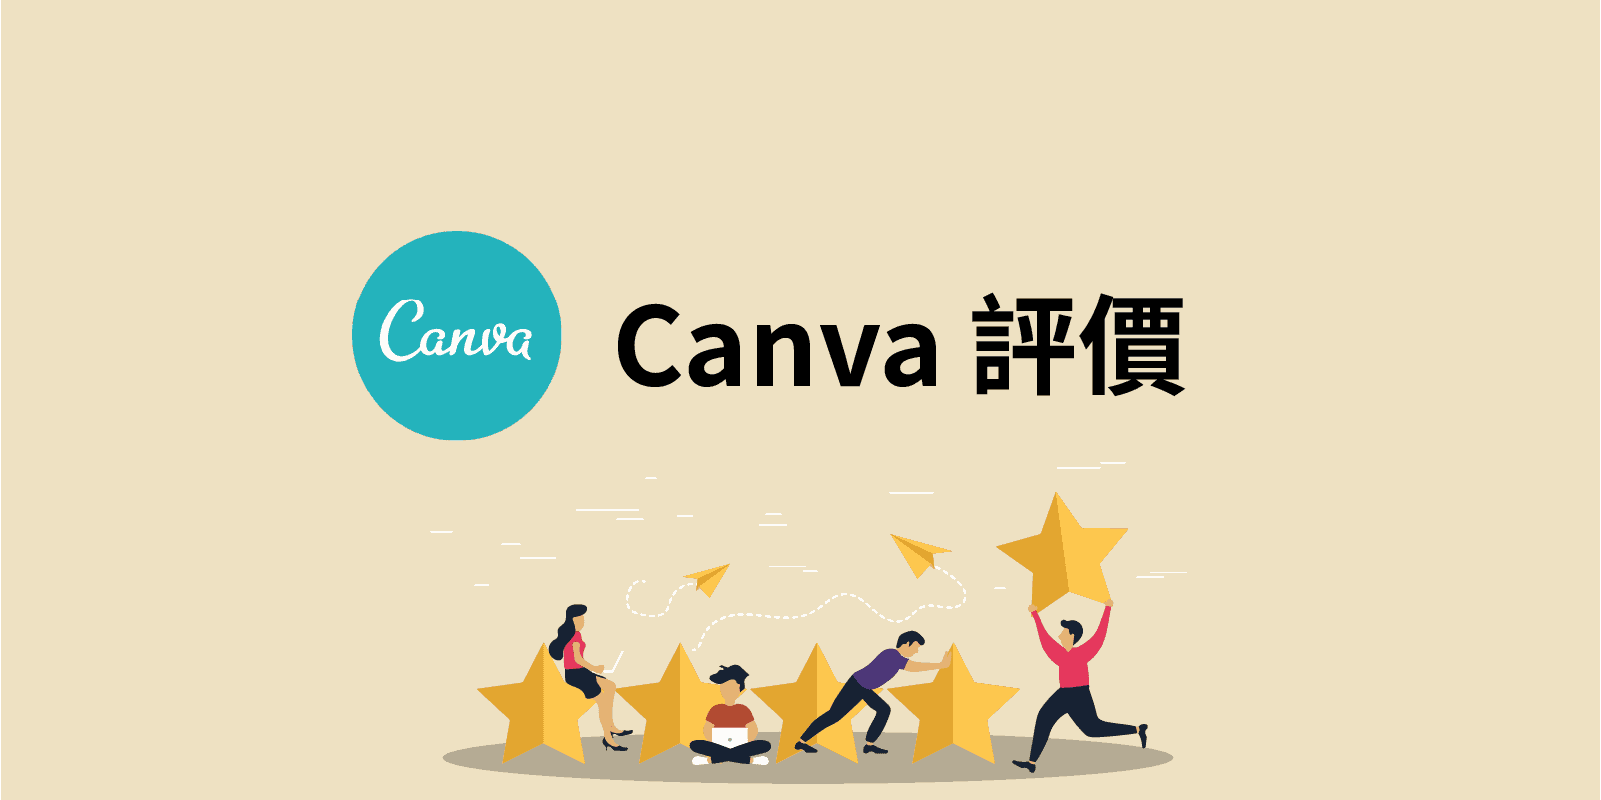 Canva-評價-featured image